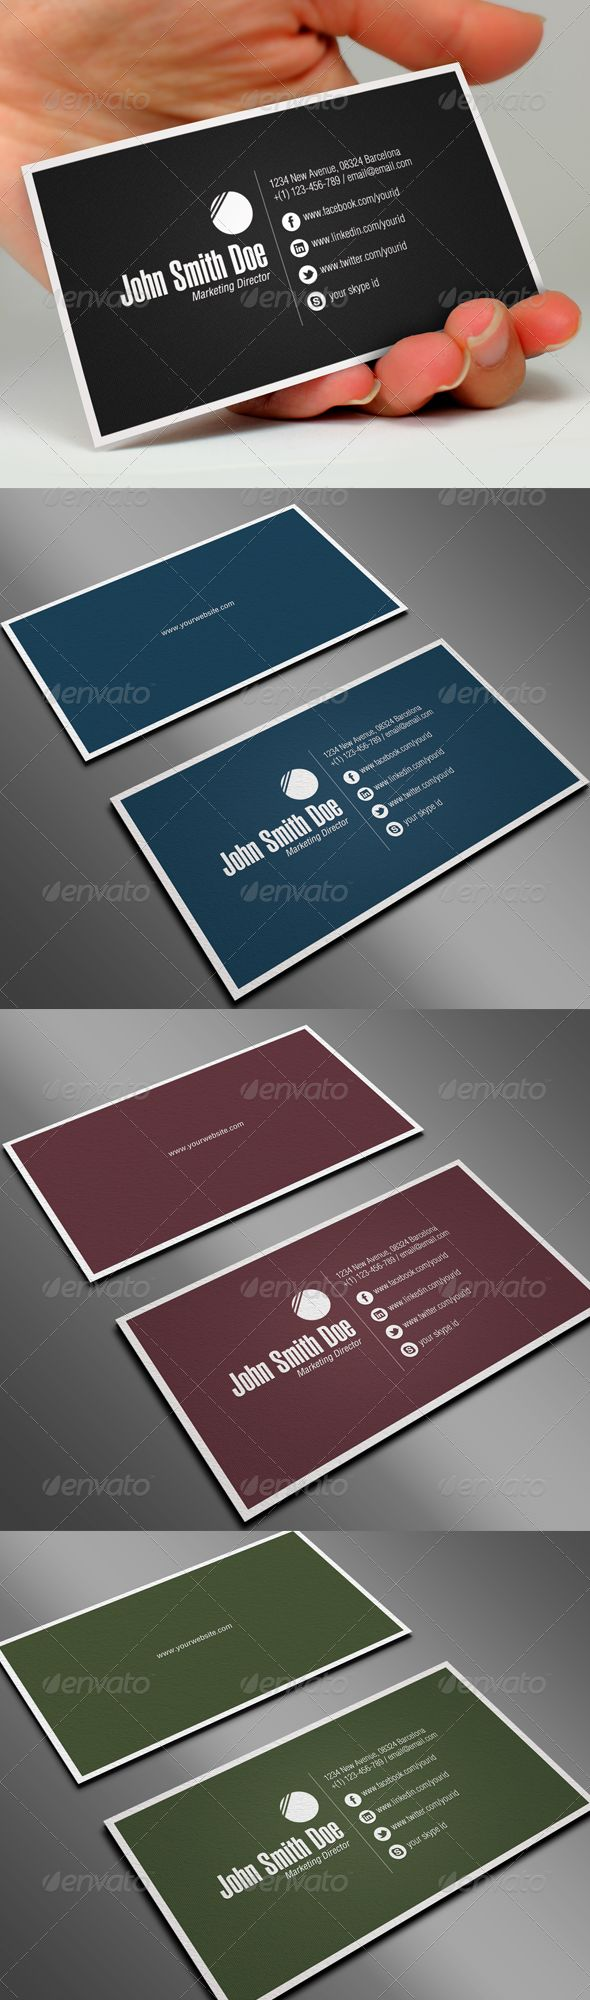 Professional Business Card - GraphicRiver Item for Sale